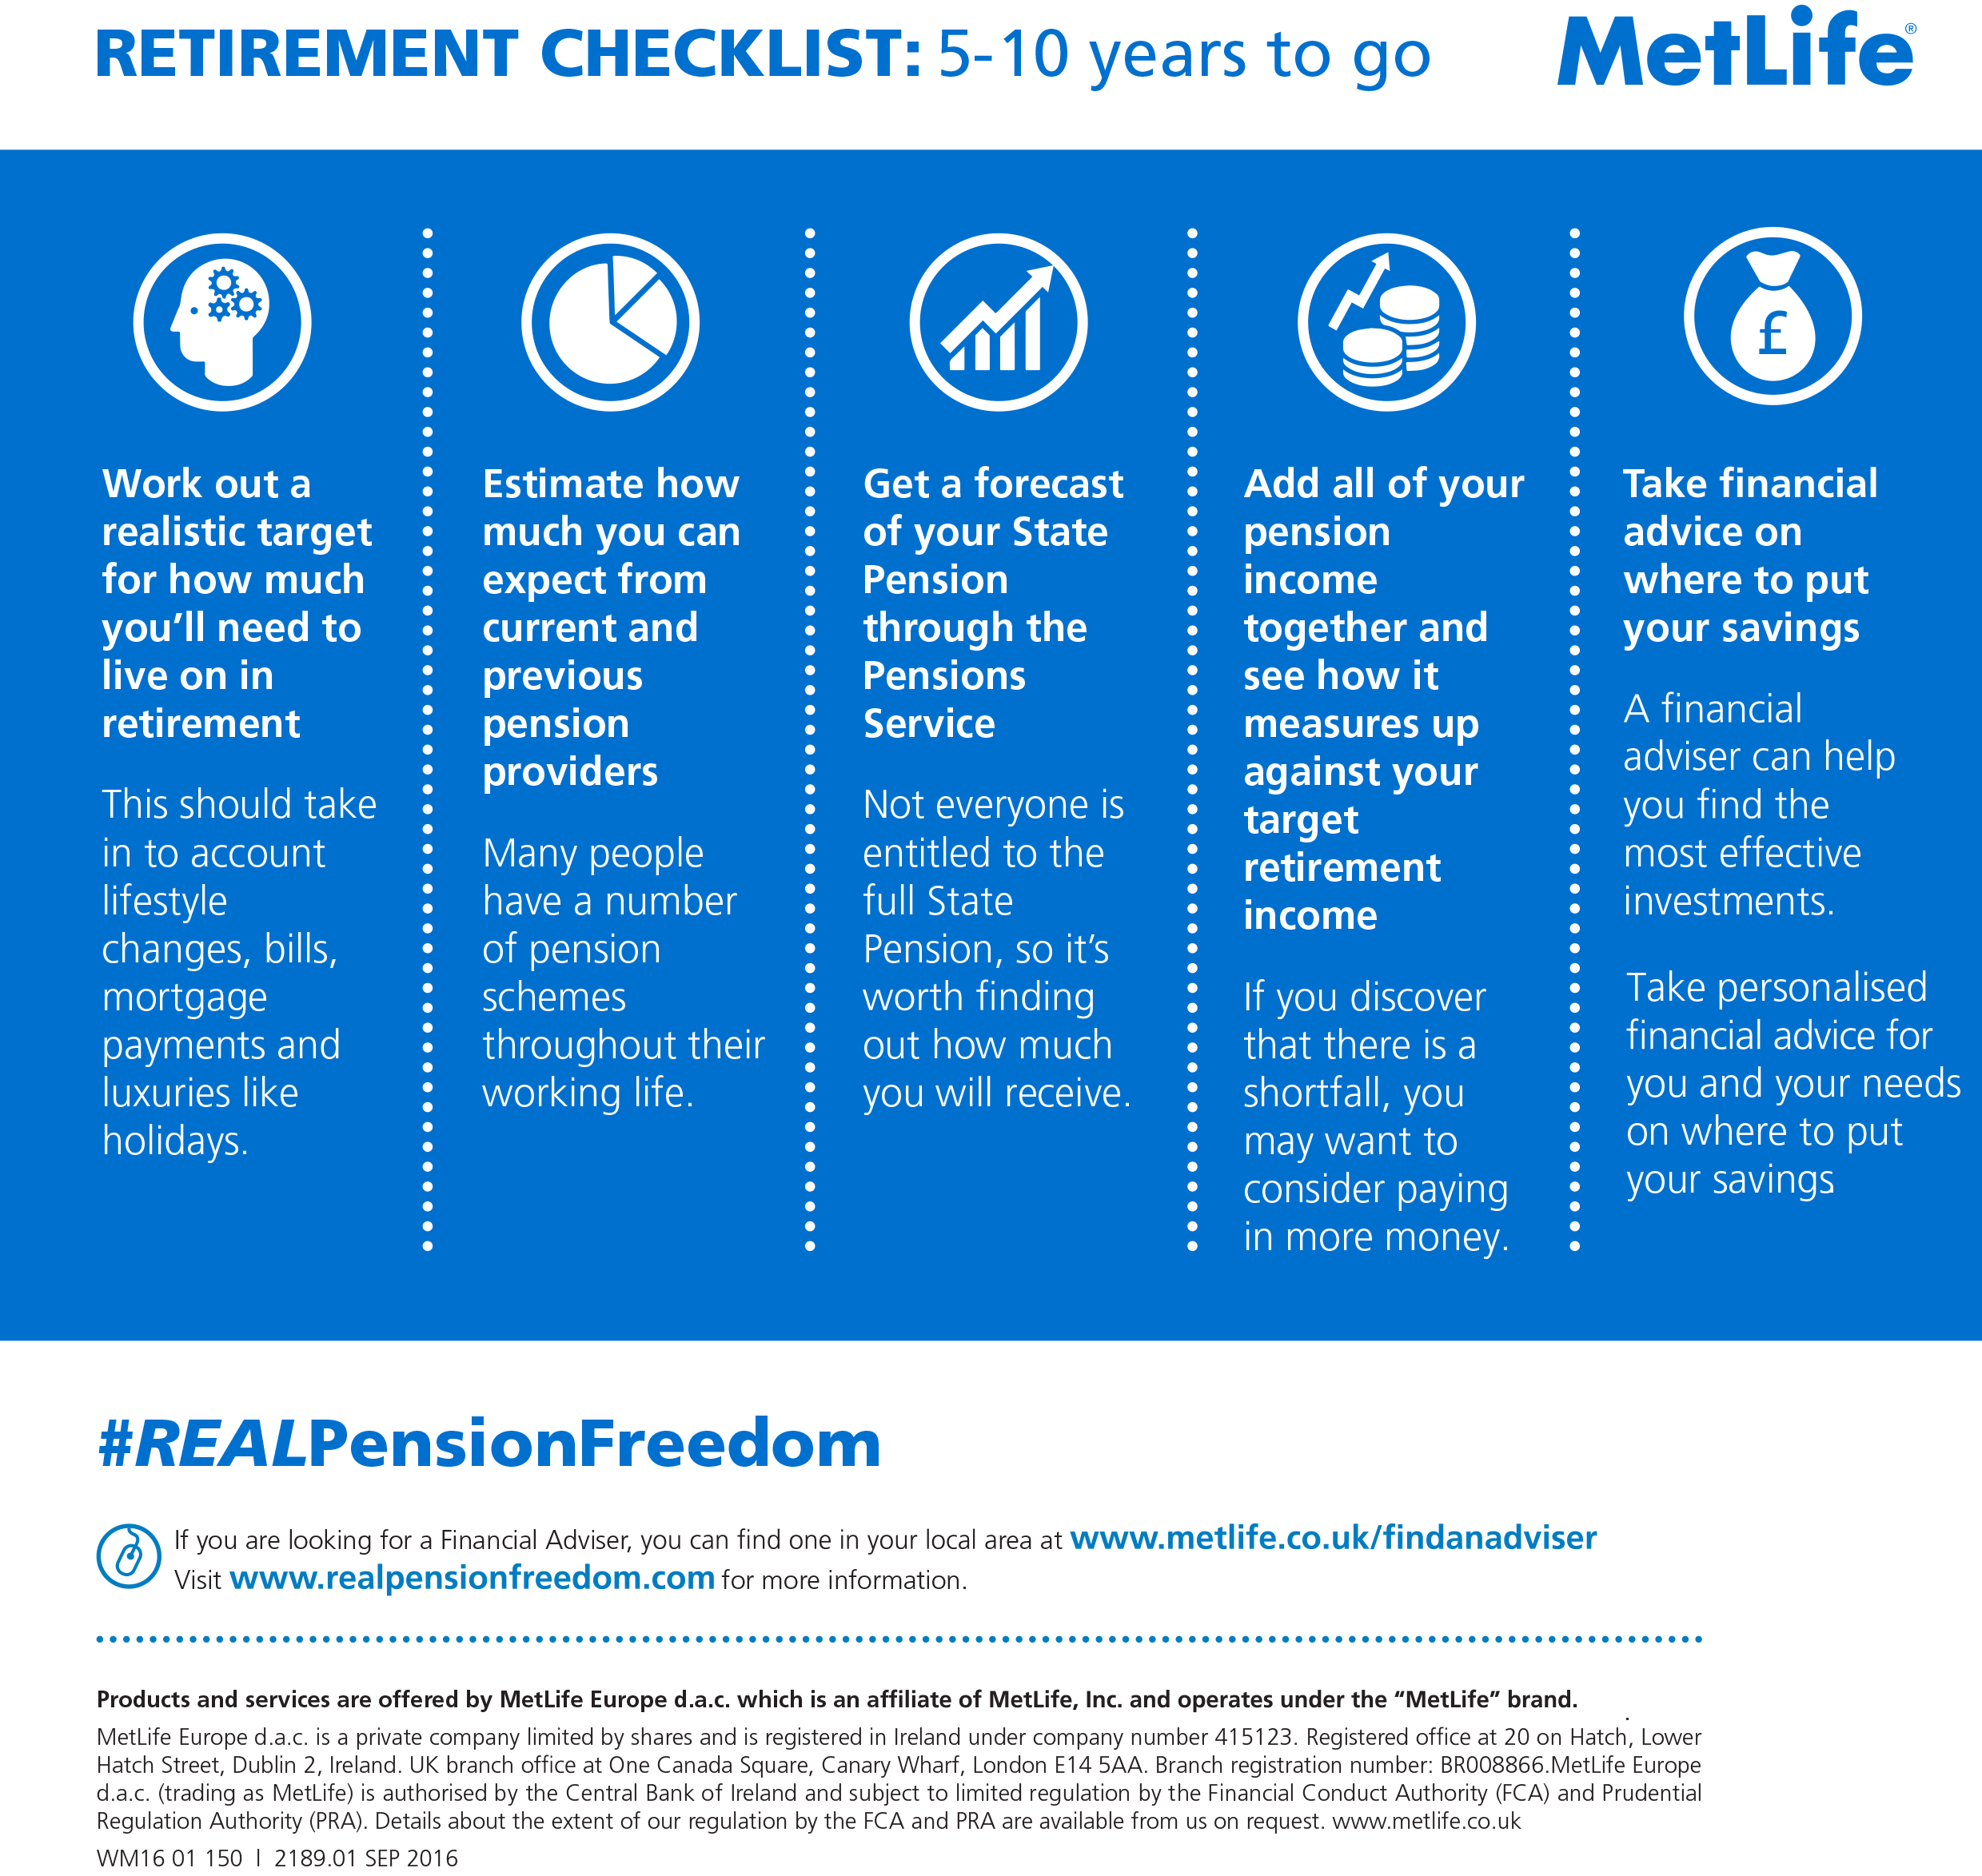 retirement-checklist-realpensionfreedom